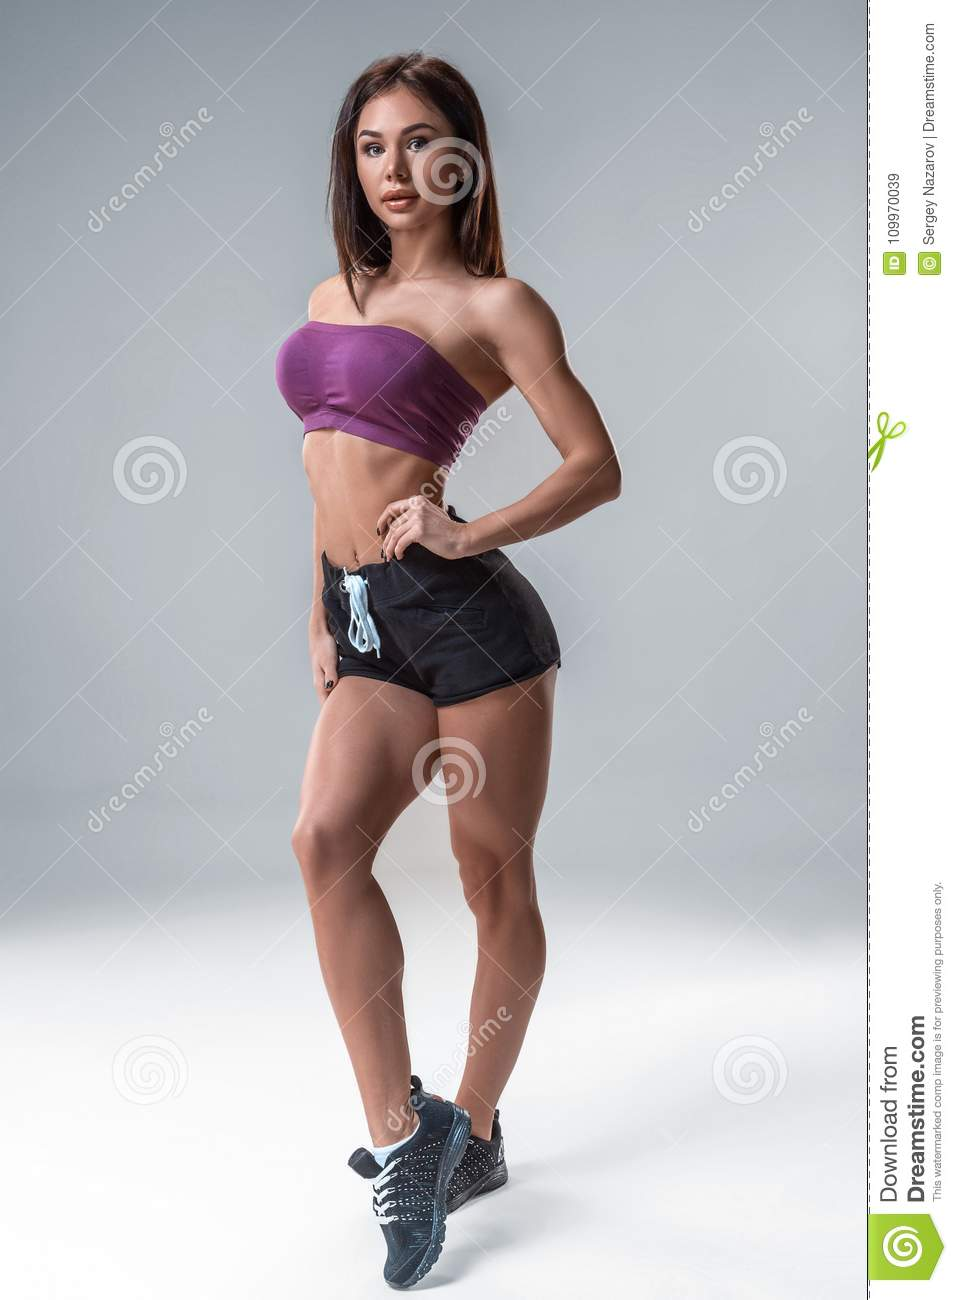 6fd6ab2fe Brunette fitness girl in sport wear with perfect body in the studio posing  before training set. A woman is dressed in short shorts in a purple top.